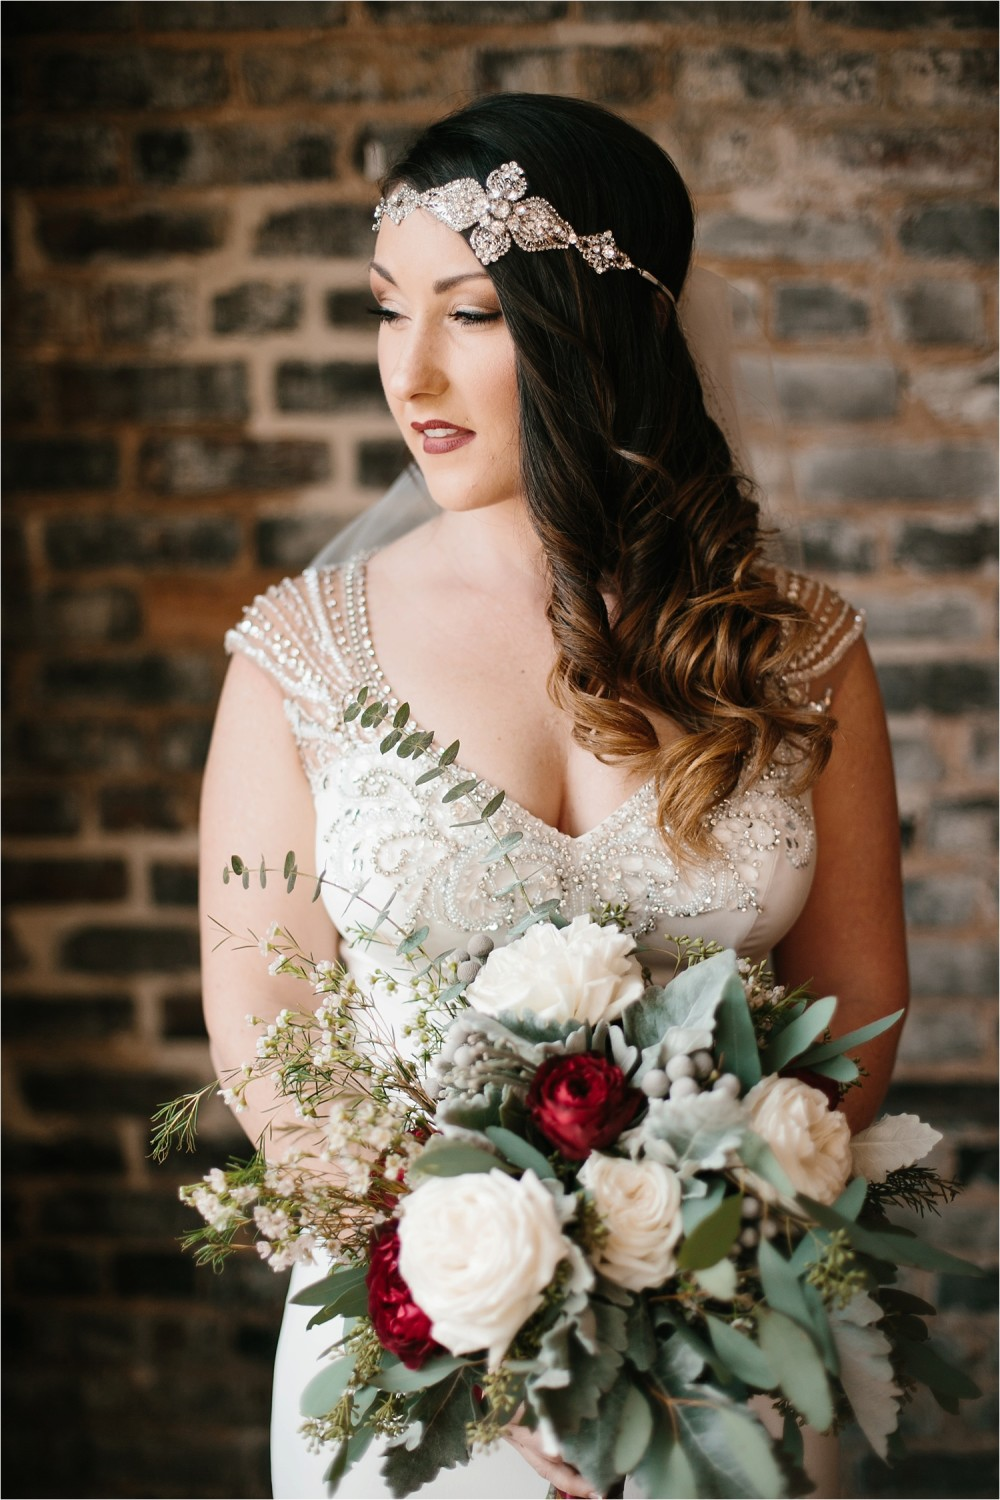 whittney-drew-__-an-intimate-wine-and-navy-wedding-in-an-industrial-venue-at-loft-123-in-paris-tx-by-north-texas-wedding-photographer-rachel-meagan-photography-_-035